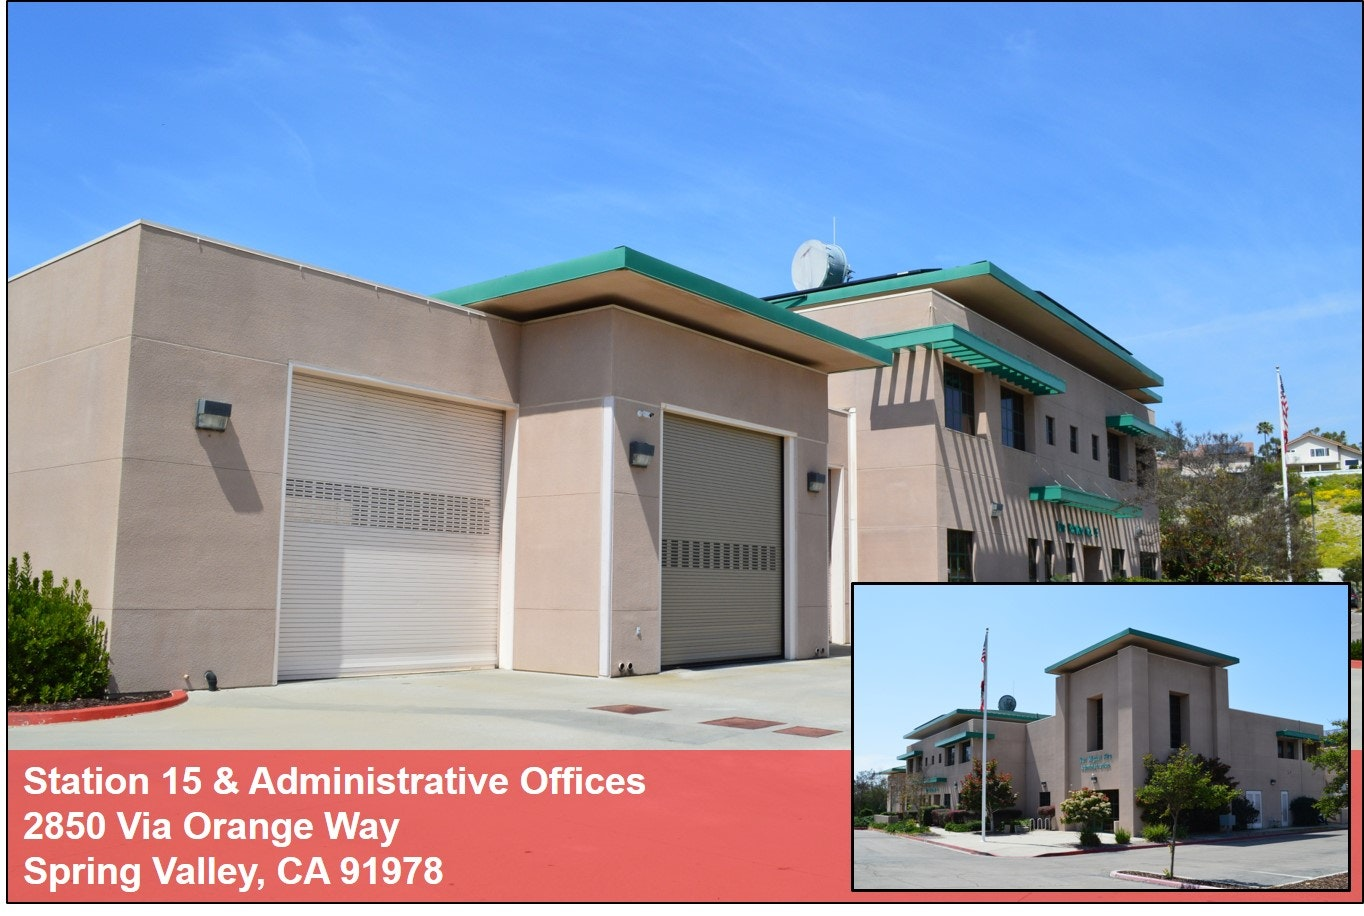 Photo of San Miguel Station 15 and Administrative Offices